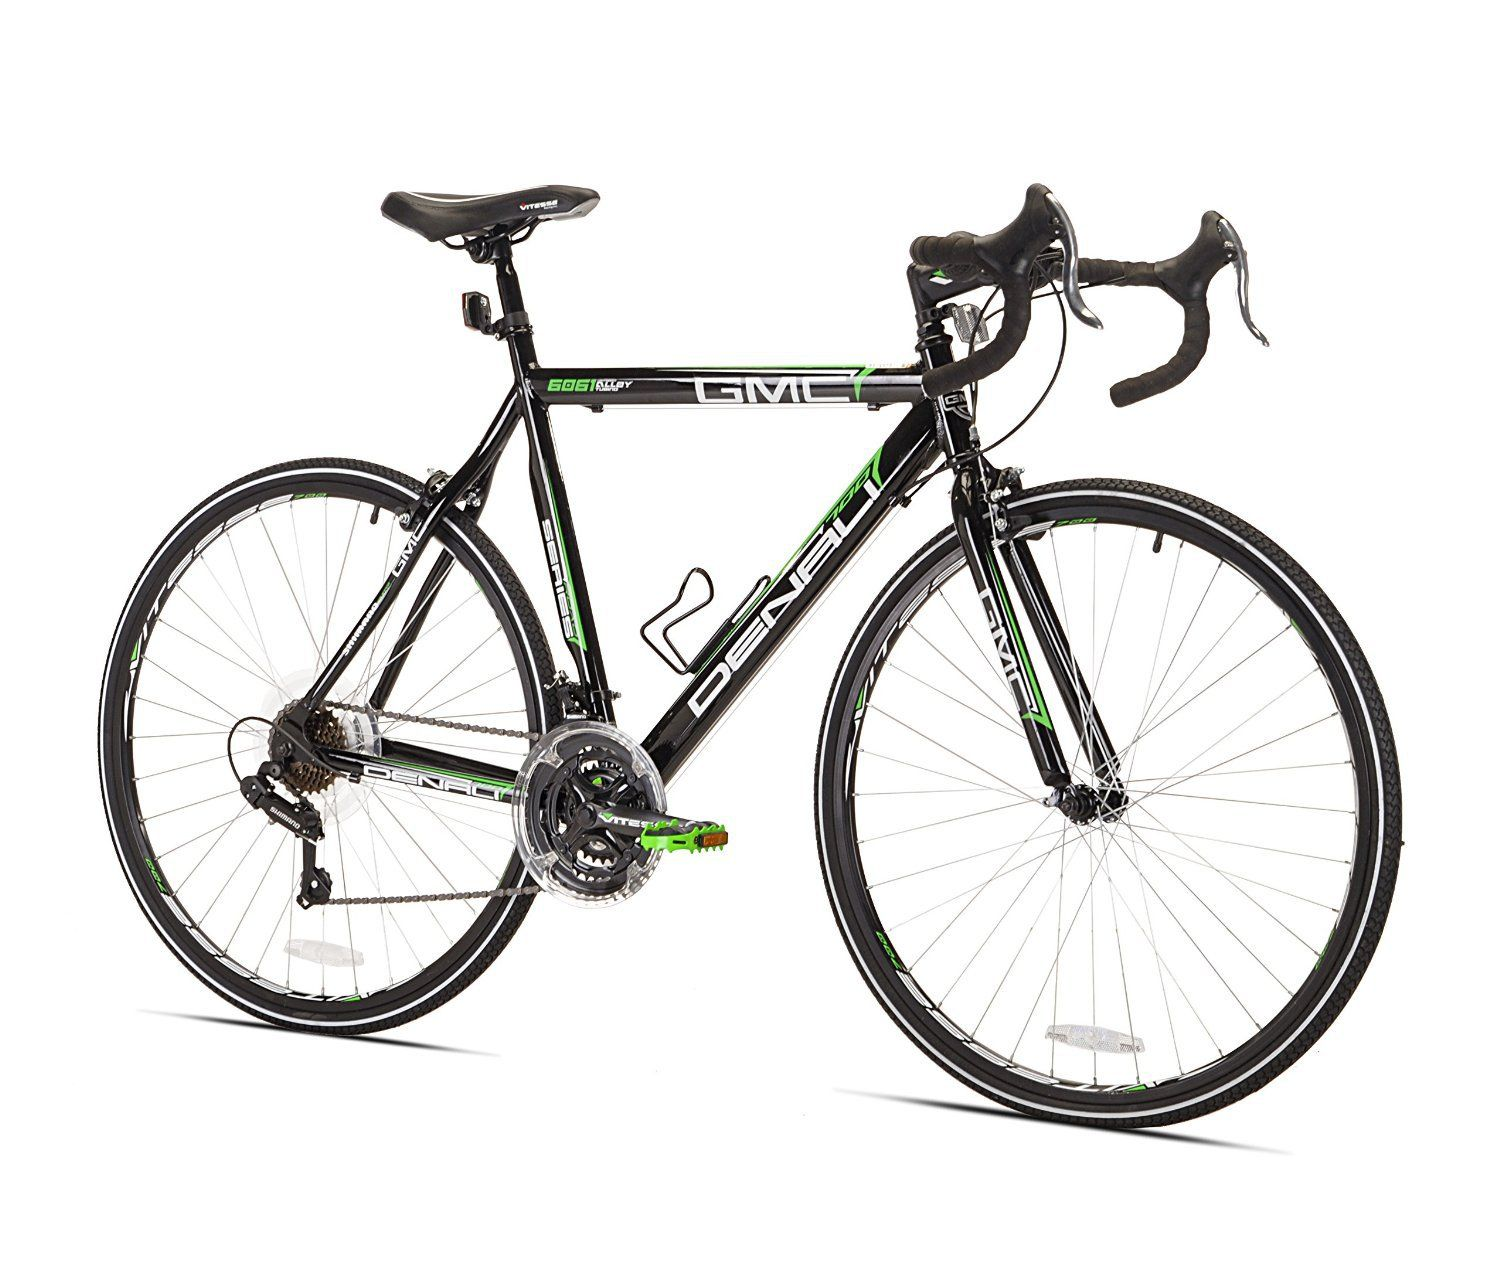 Gmc Denali Road Bike Review Why Should You Check This City